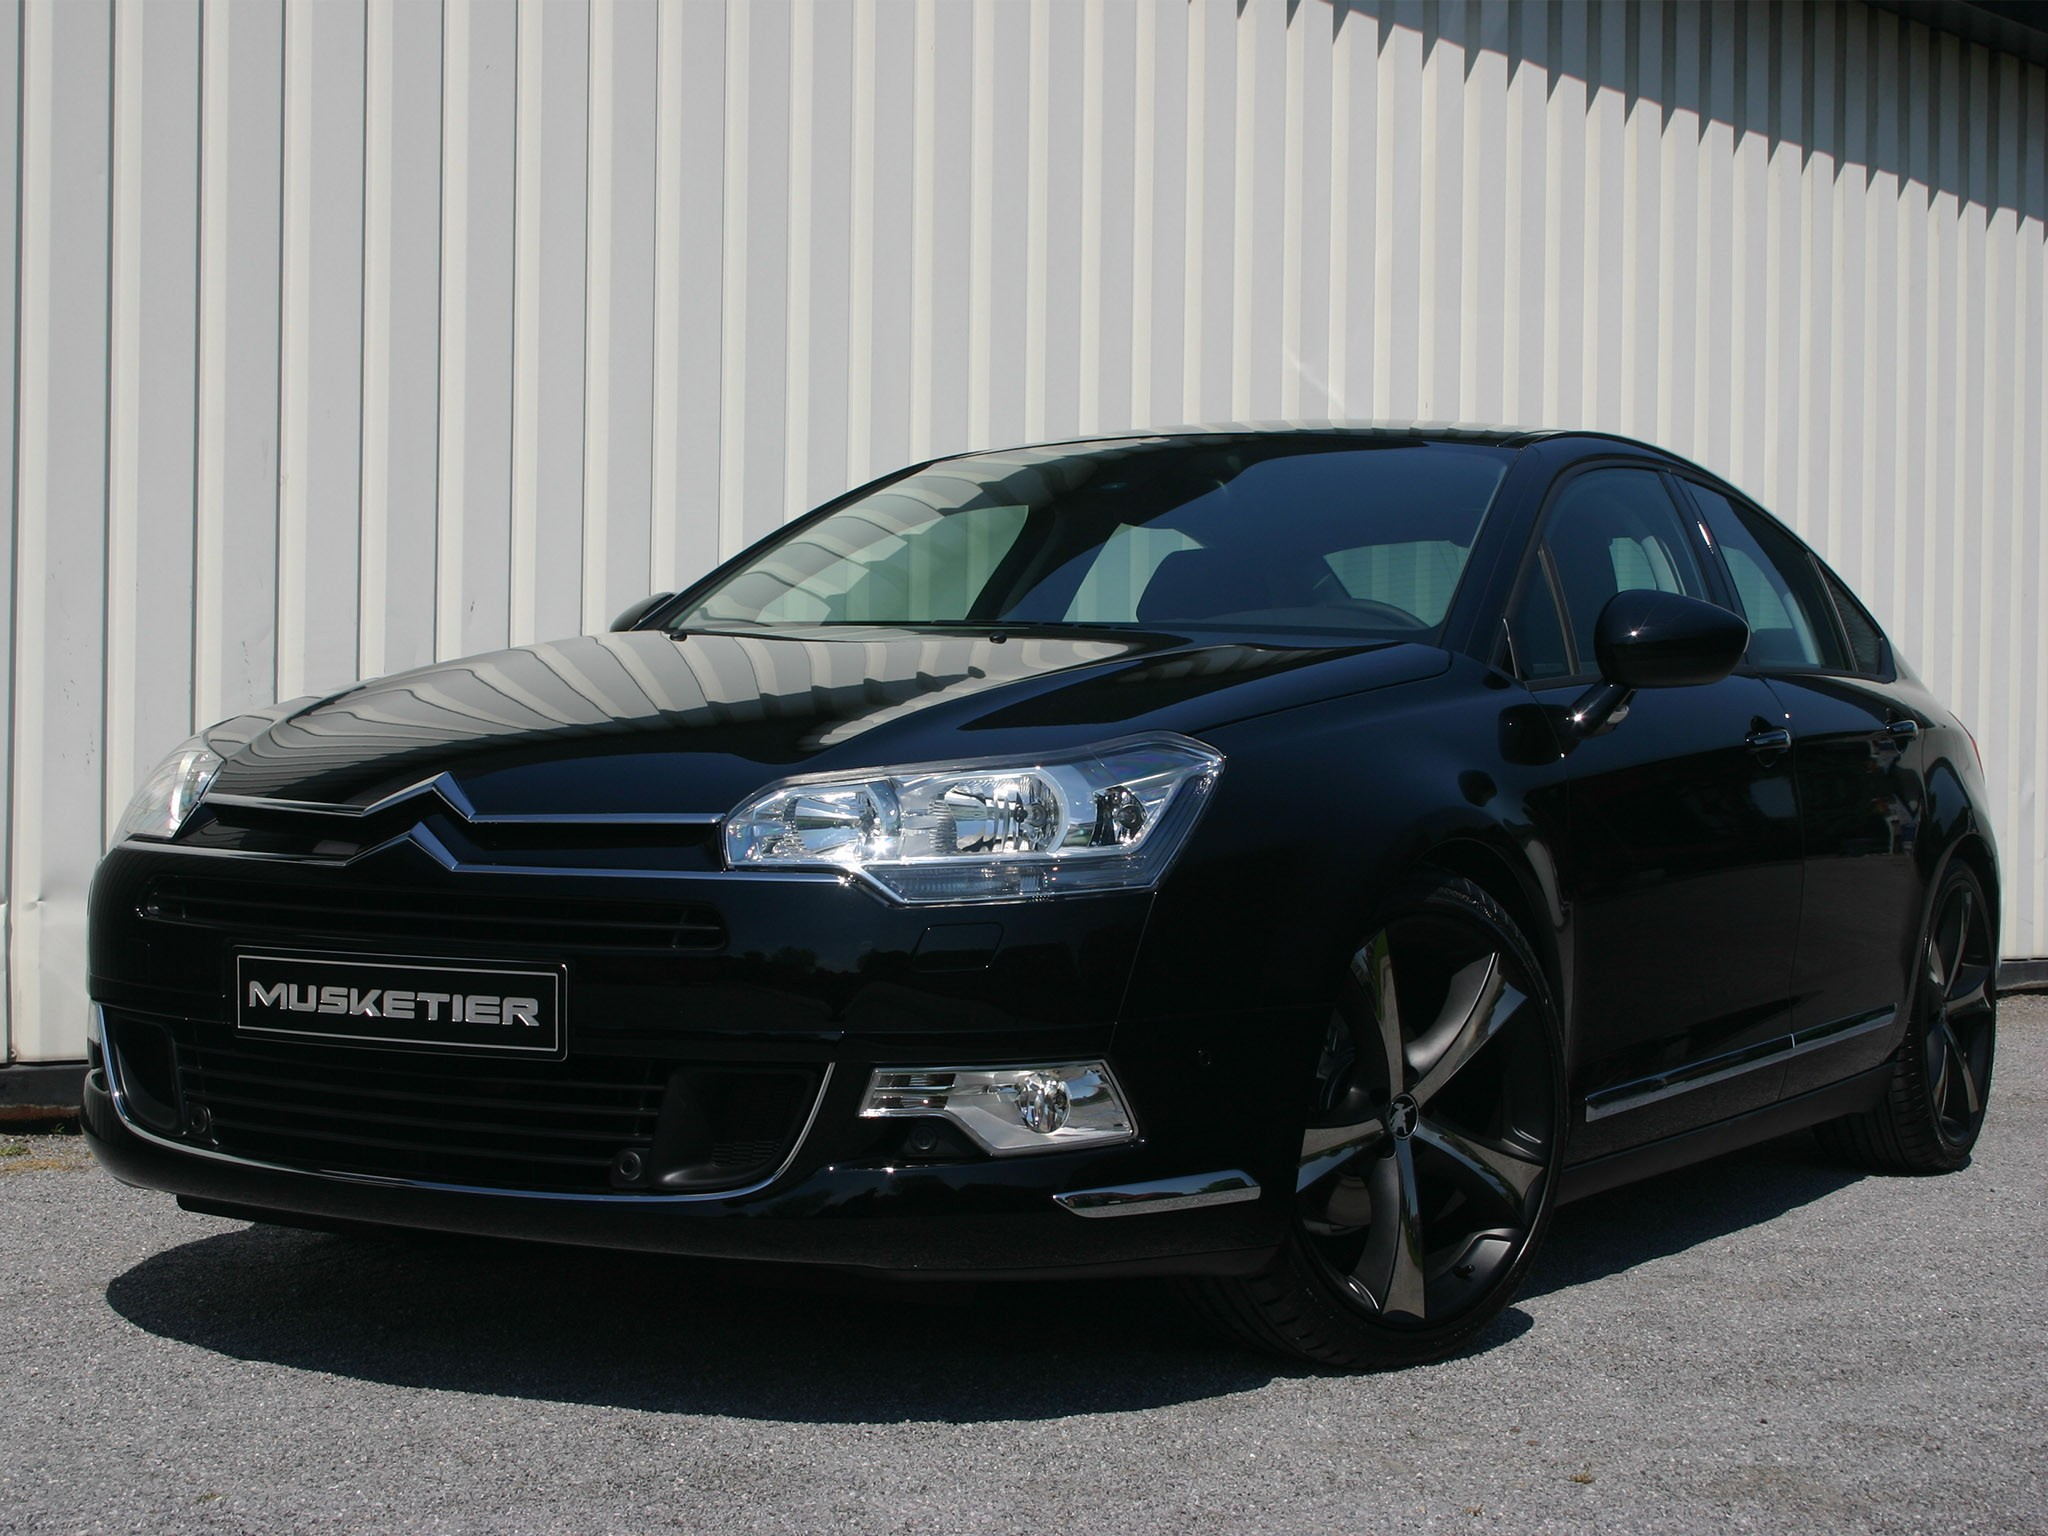 2008 Musketier Citroen C5